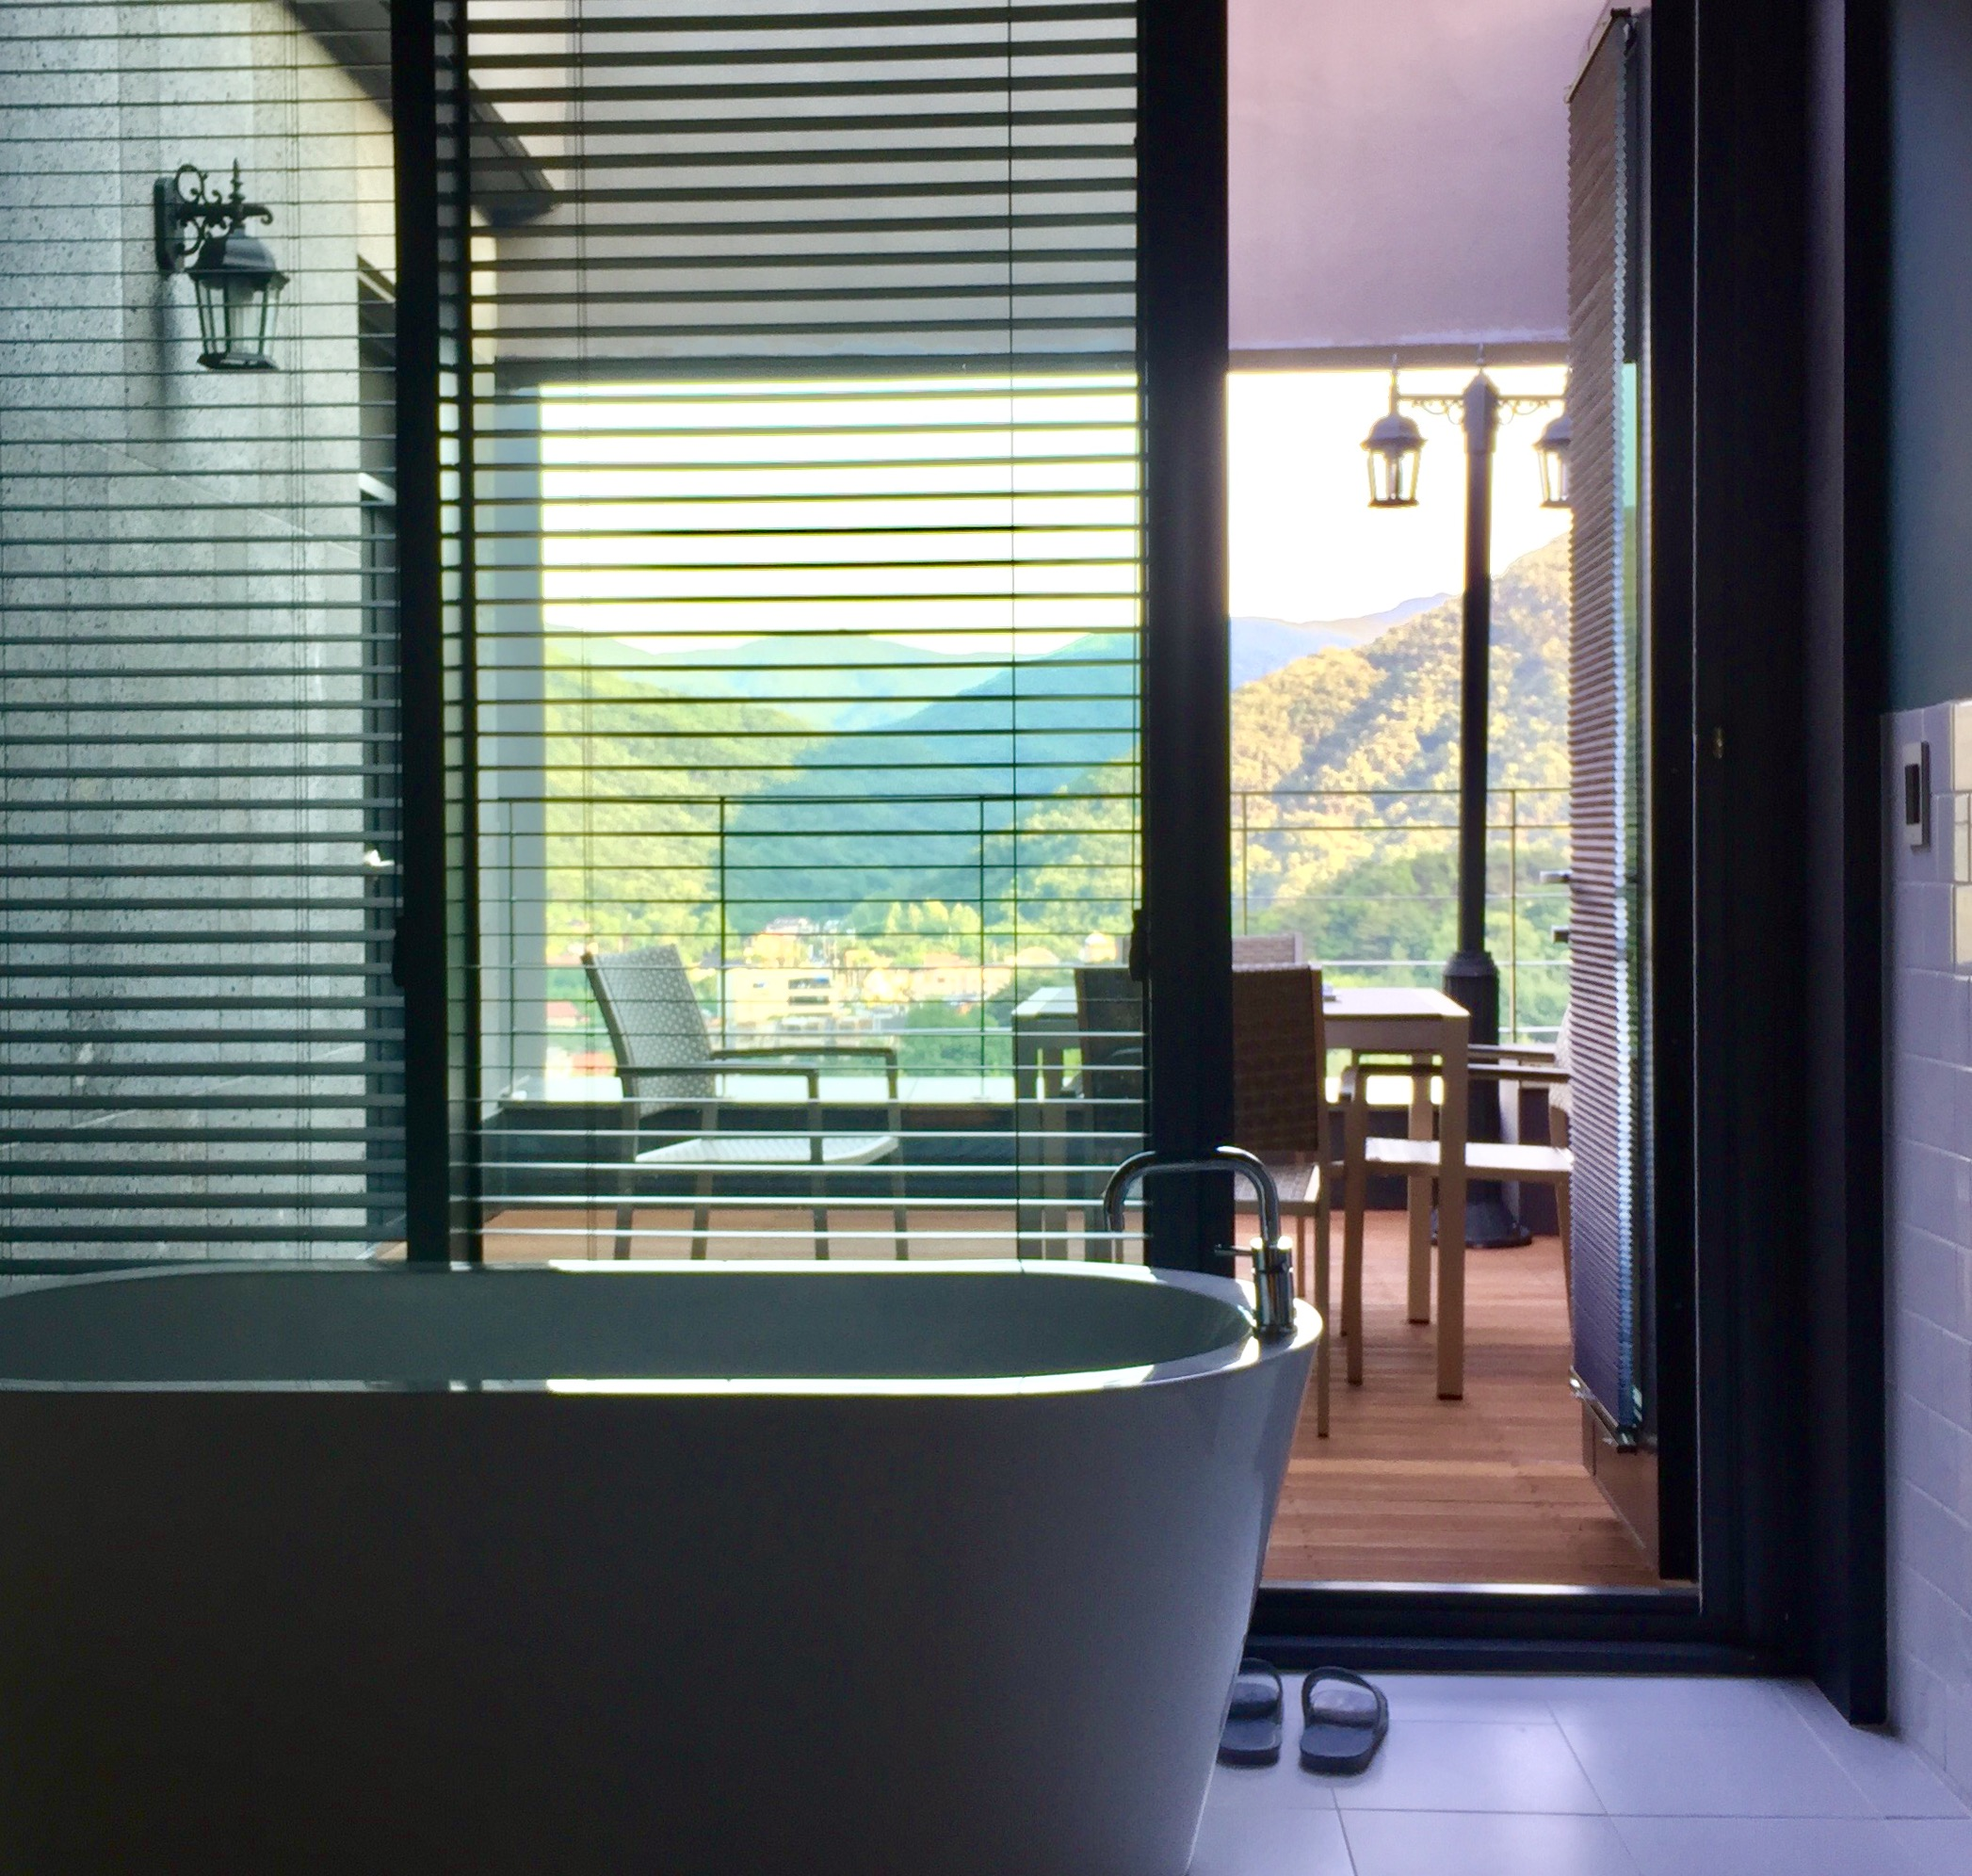 Relaxing view of the in-room bathtub with a balcony beyond.